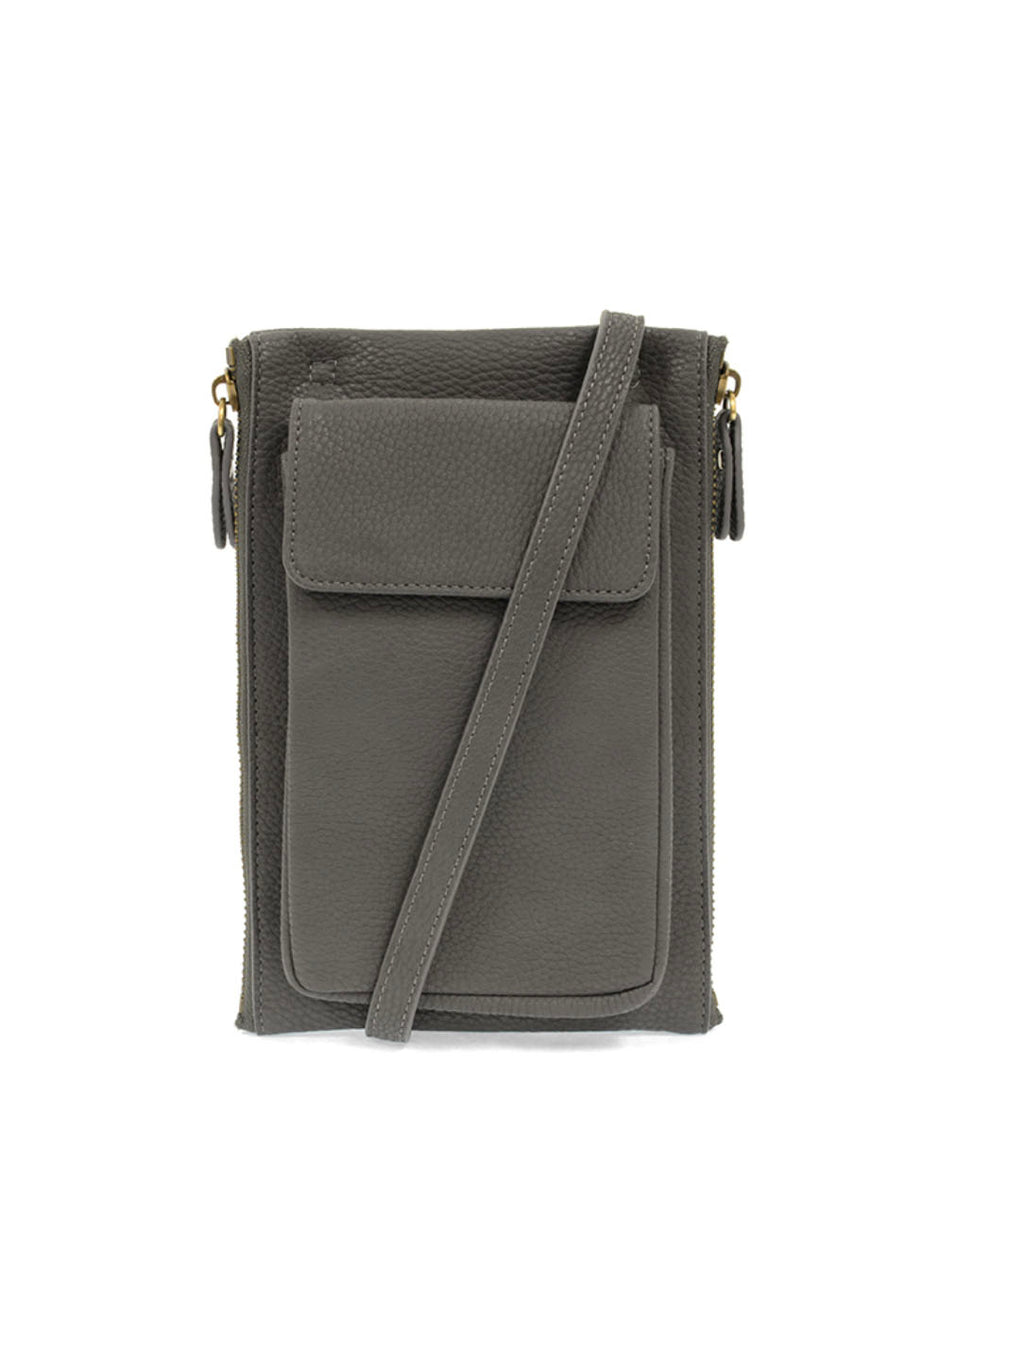 Joy Susan Mary Multi-Pocket Bag in Charcoal